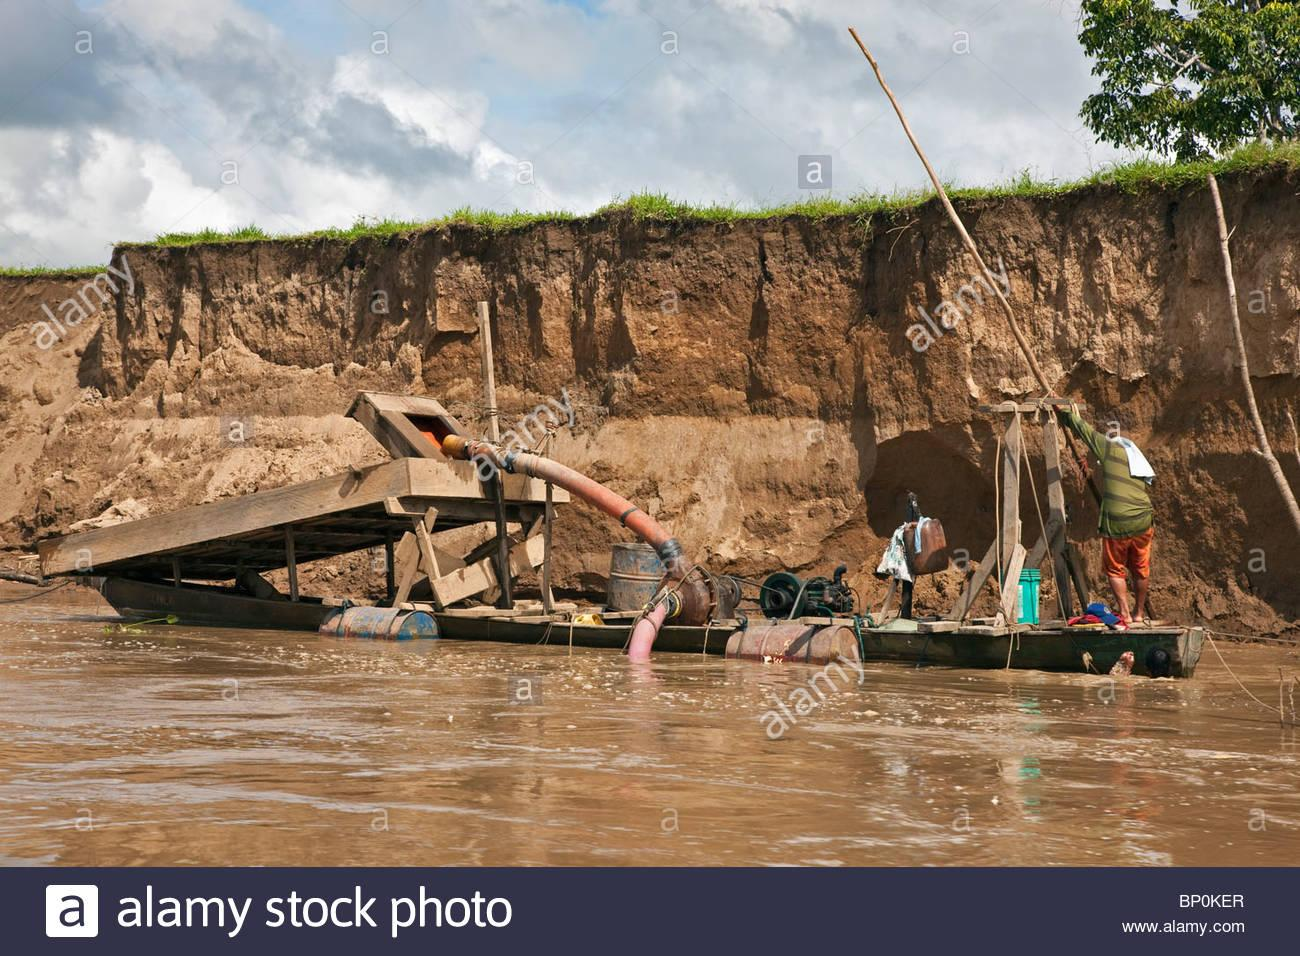 peru-a-floating-dredge-on-the-madre-de-dios-river-which-is-used-for-BP0KER.jpg